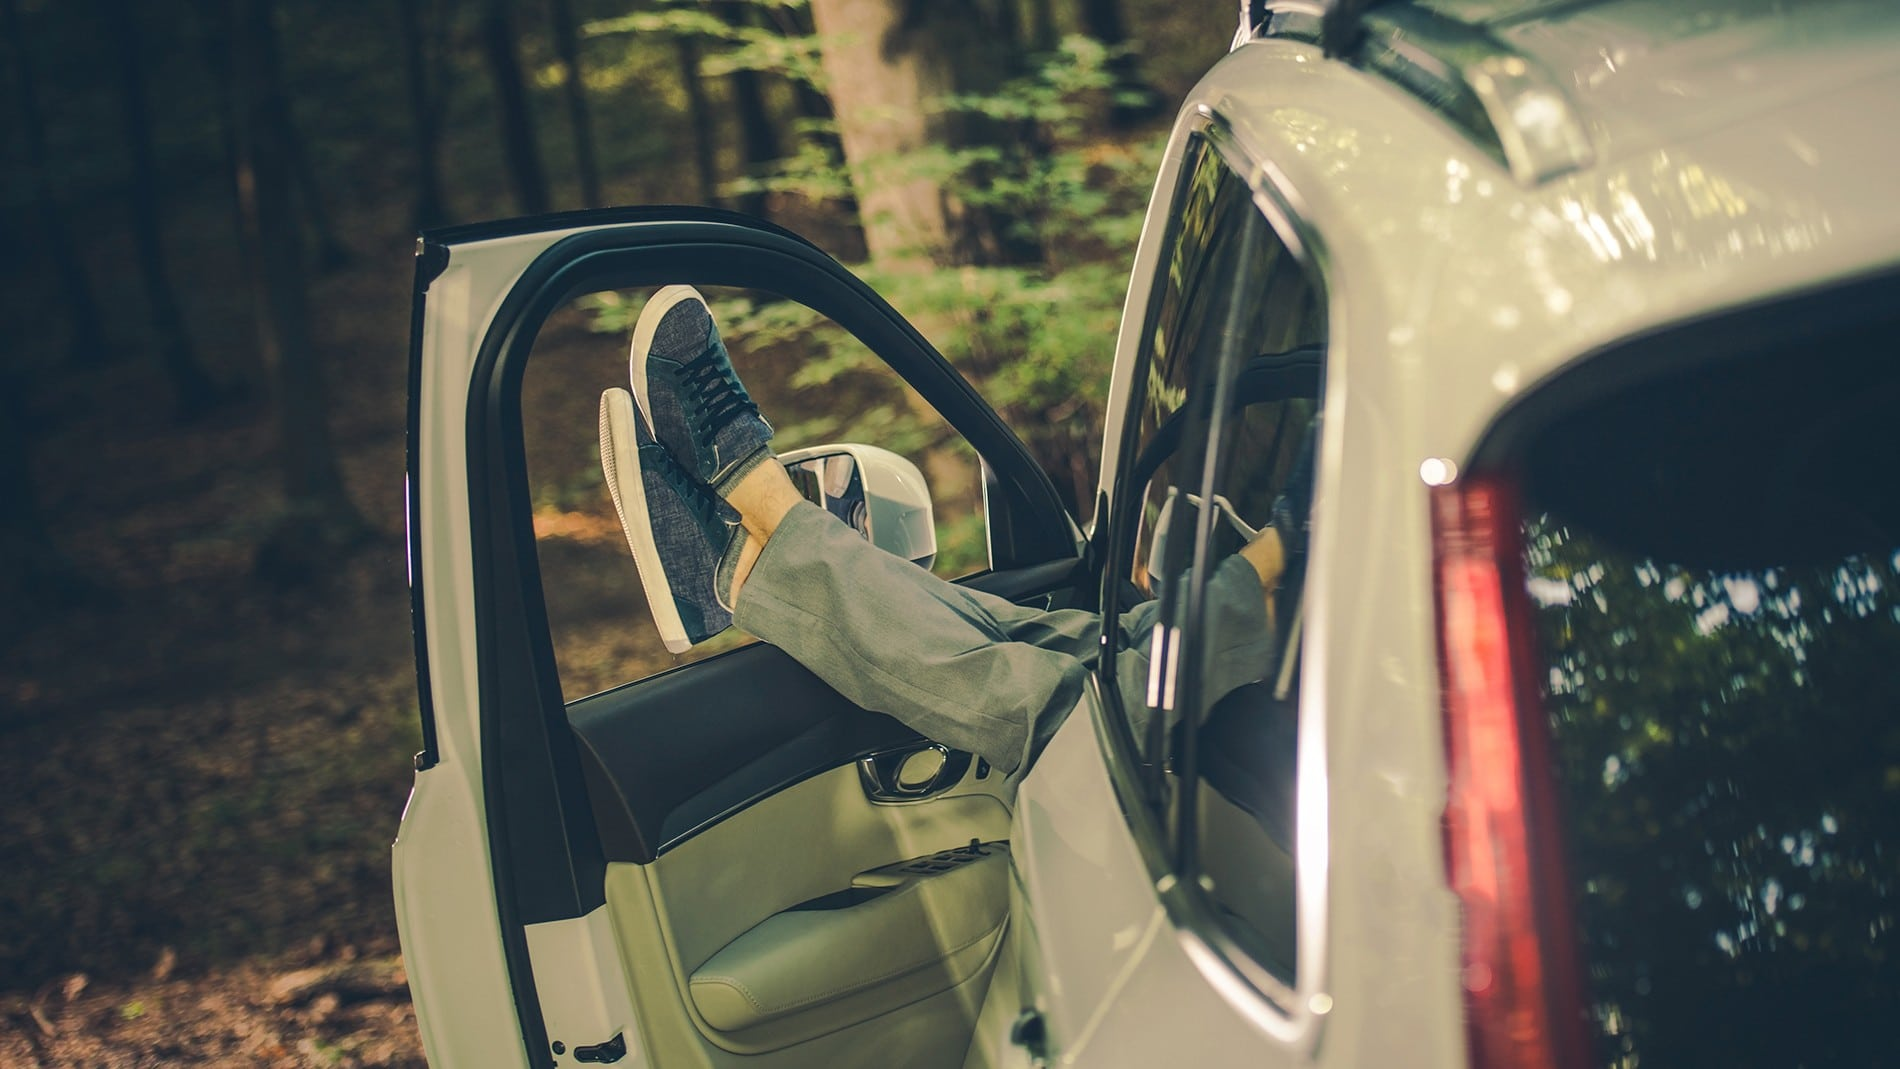 person relaxing with feet resting on door of vehicle